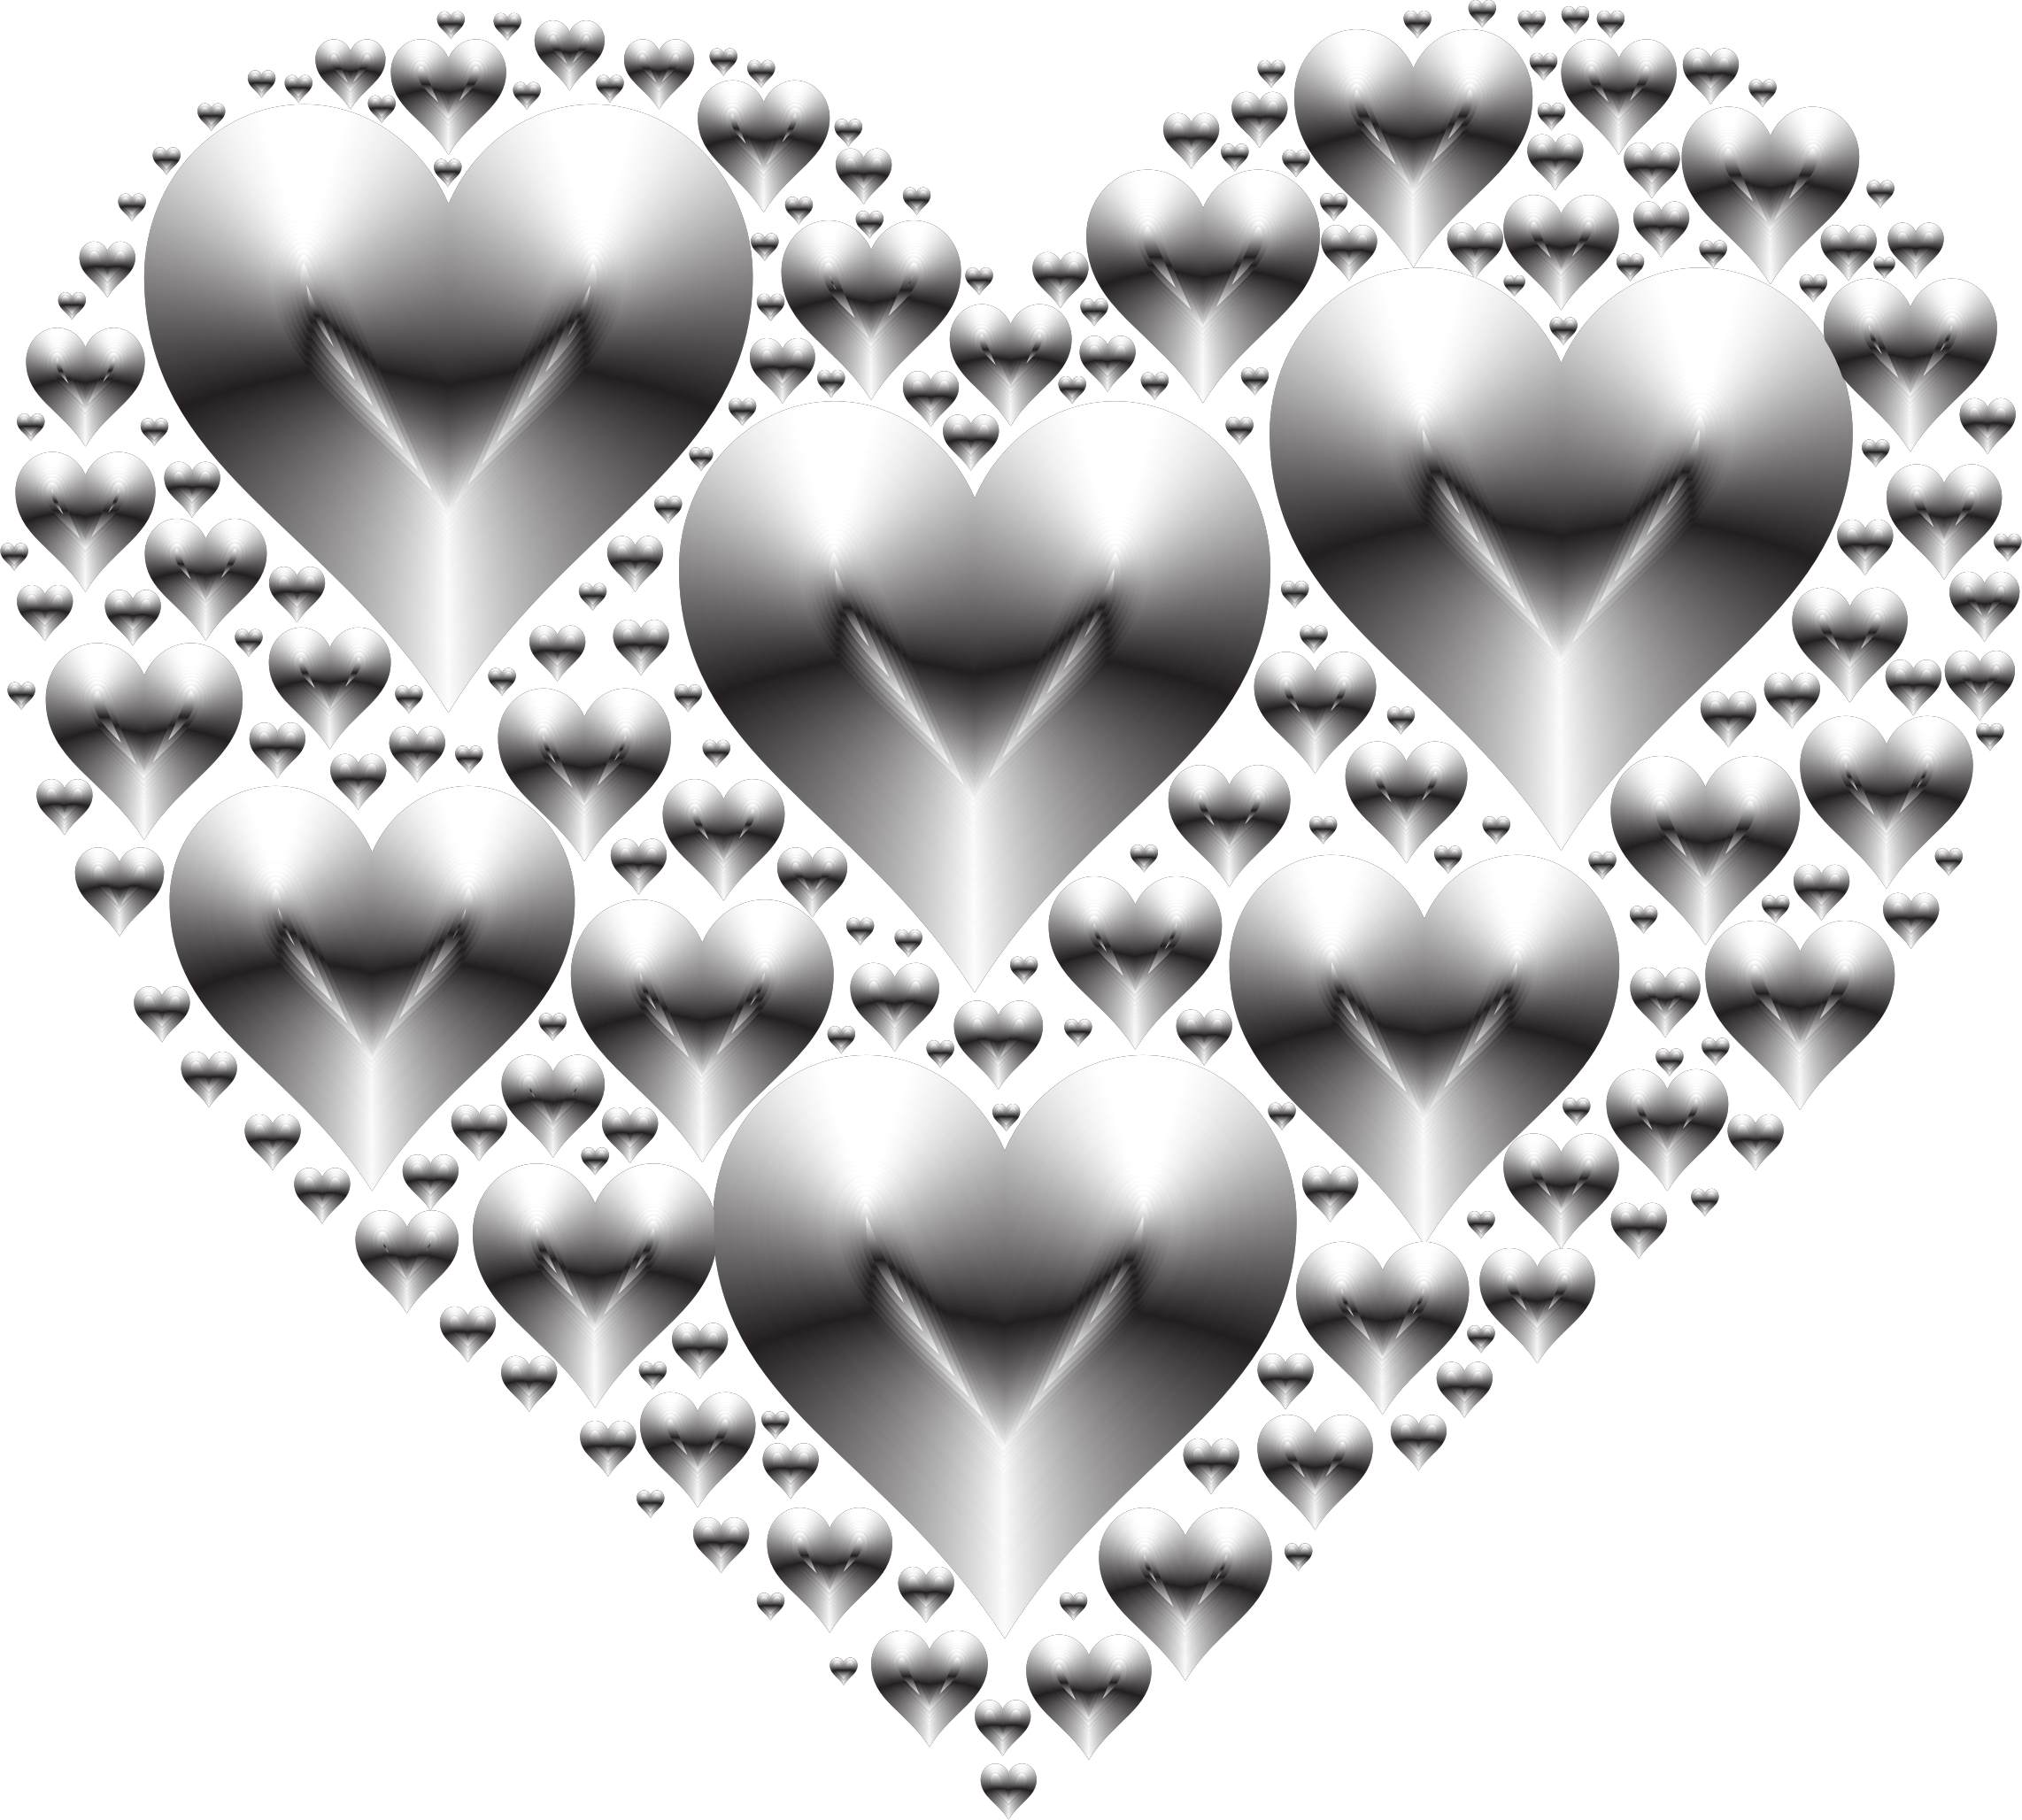 Clipart hearts black and white. In heart rejuvenated no